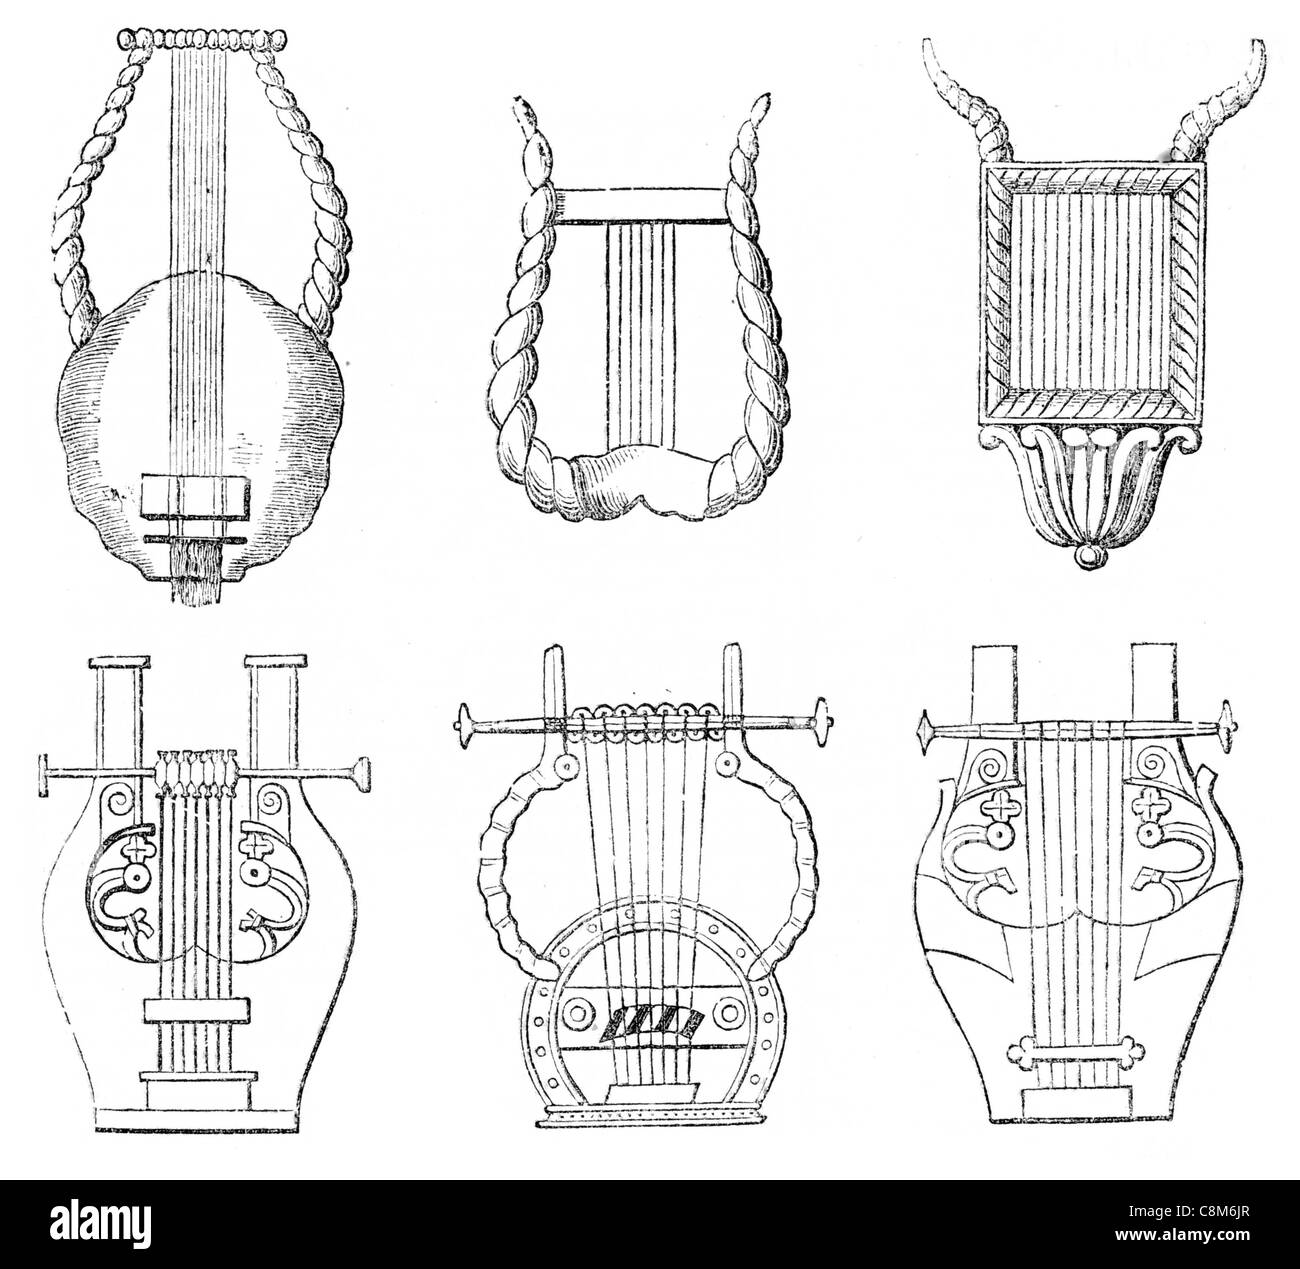 various forms of ancient lyre stringed musical instrument Greek classical antiquity strings playing music plectrum - Stock Image